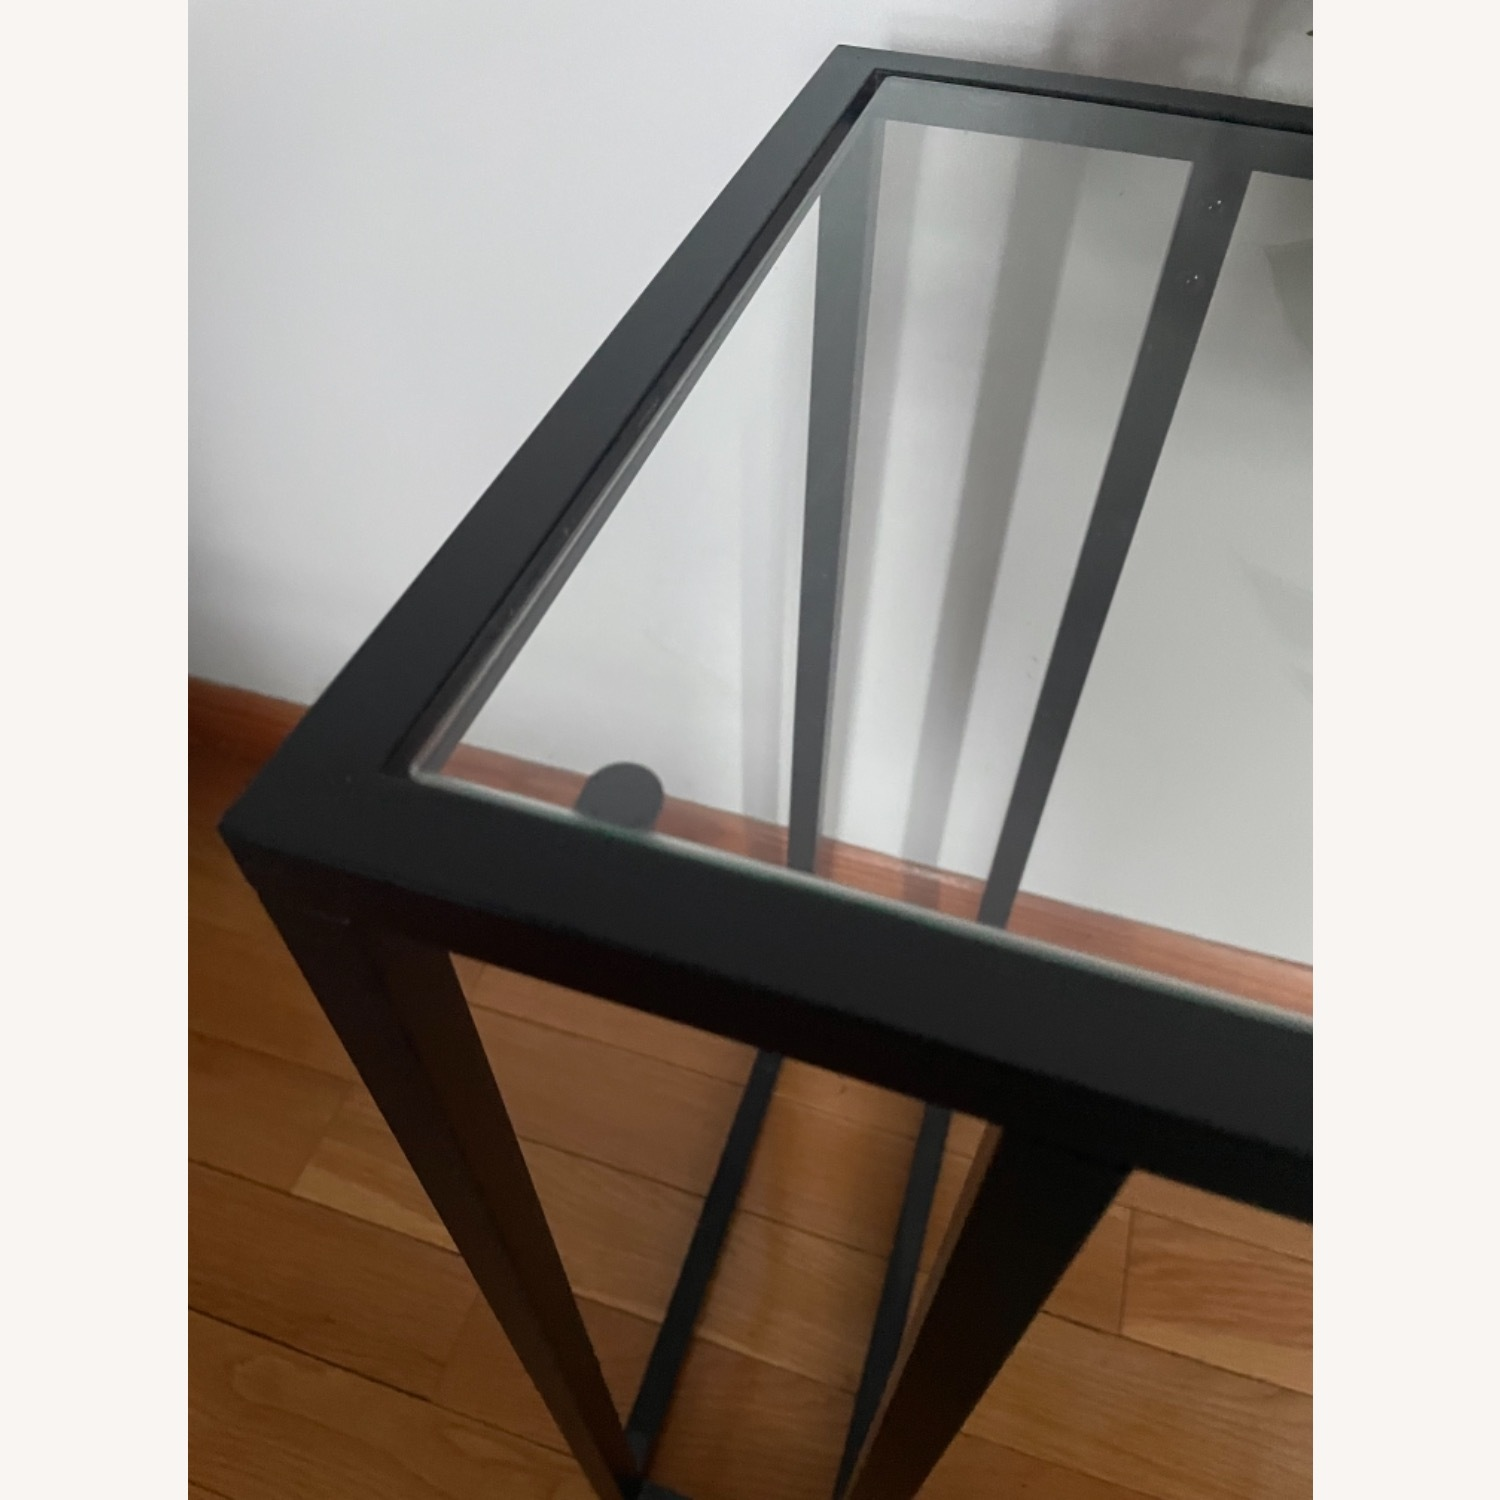 2 x Black Frame and Glass Side Tables - image-8